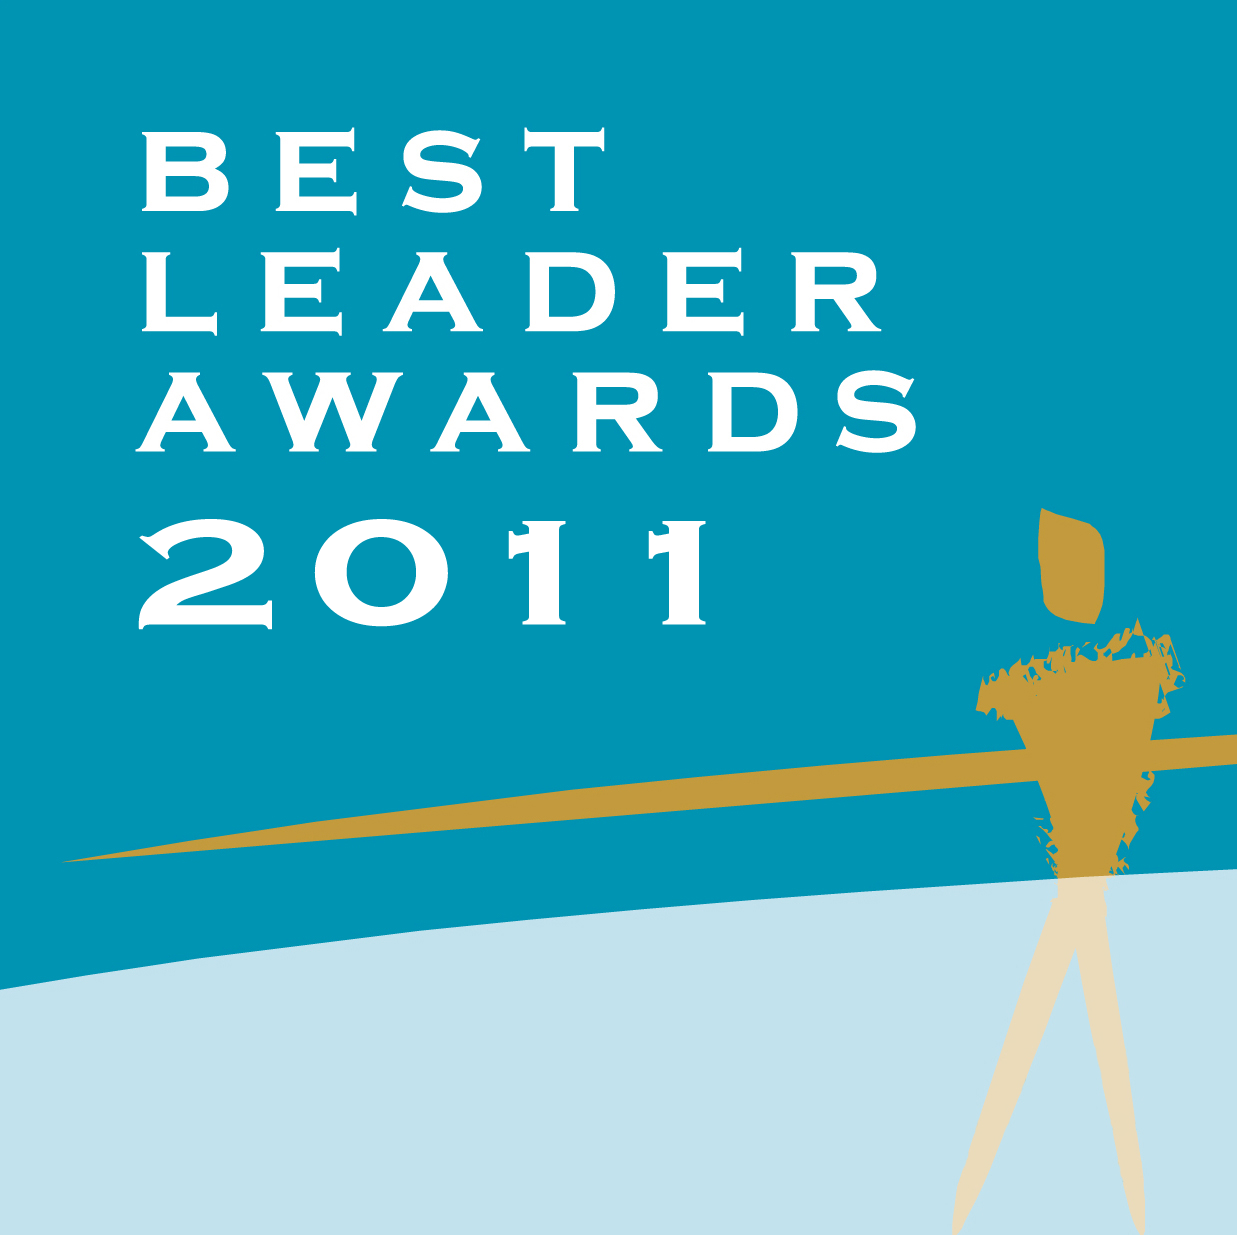 Best Leader Awards 2011